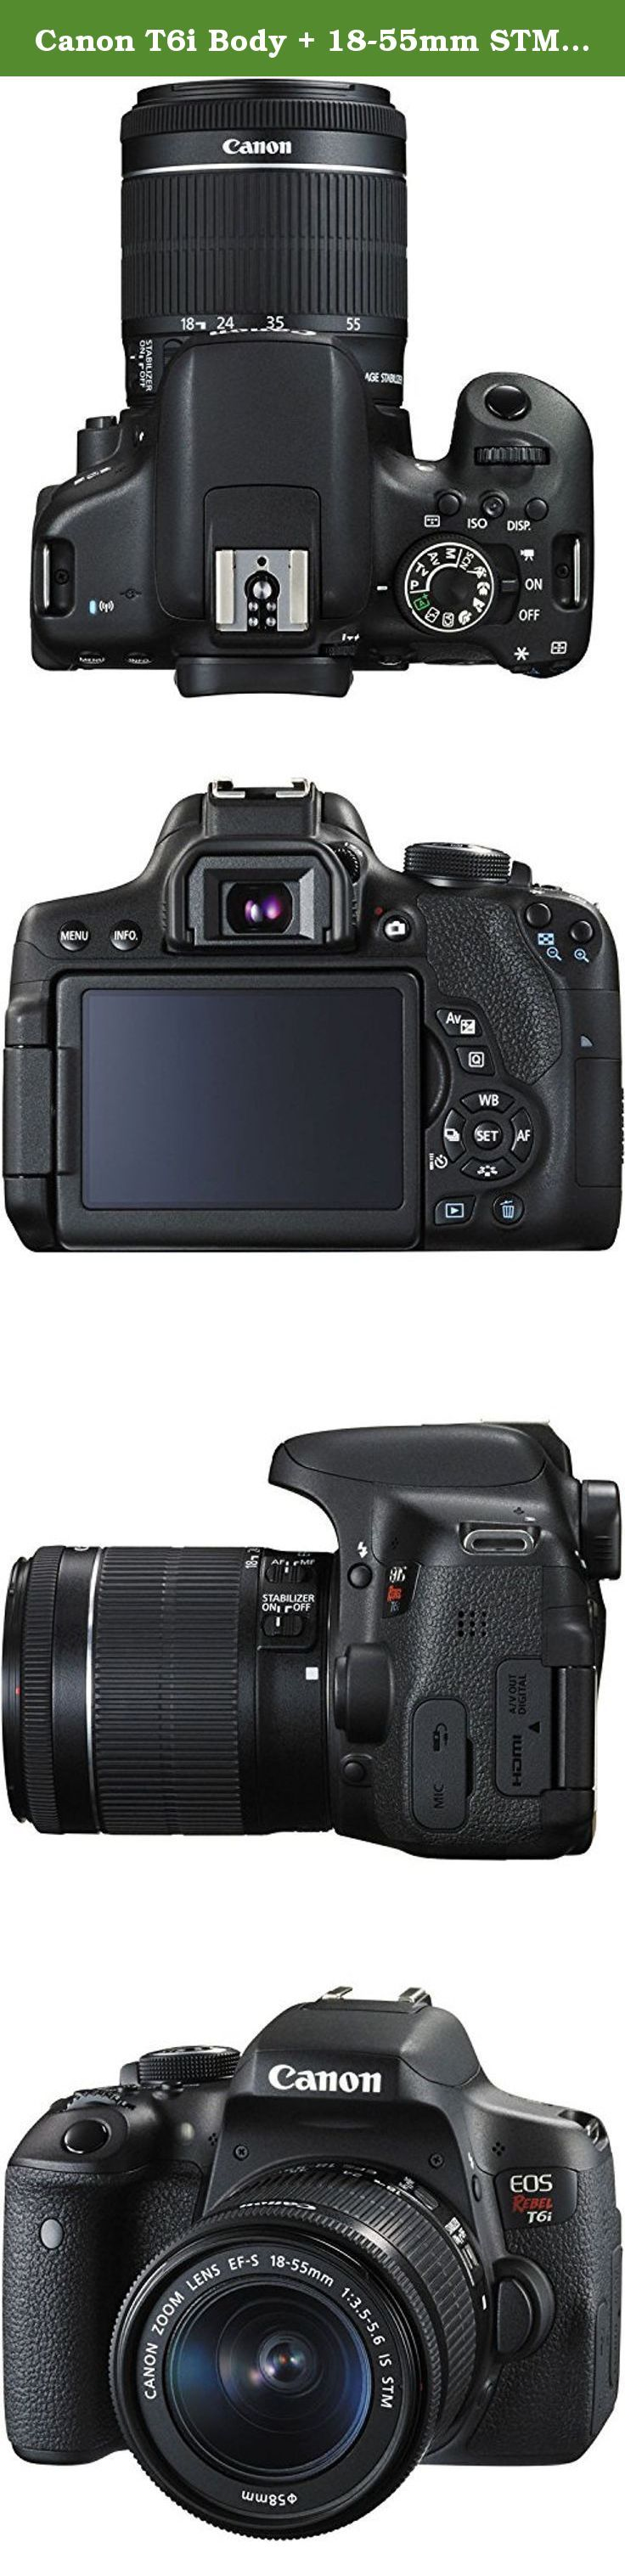 Canon T6i Body + 18-55mm STM & 55-250mm STM Zoom Lenses, Wide Angle, Telephoto Lens, Pro Case and Tripod, Memory Card & more. Packing a high resolution 24.2-megapixel CMOS sensor and the DIGIC 6 Image Processor into a compact body is the EOS Rebel T6i DSLR Camera with 18-55mm Lens from Canon, which includes a versatile standard zoom lens useful for stills and video. This system enables shooting in a wide variety of conditions, from bright sunlight to dim indoor scenarios due to ISO...